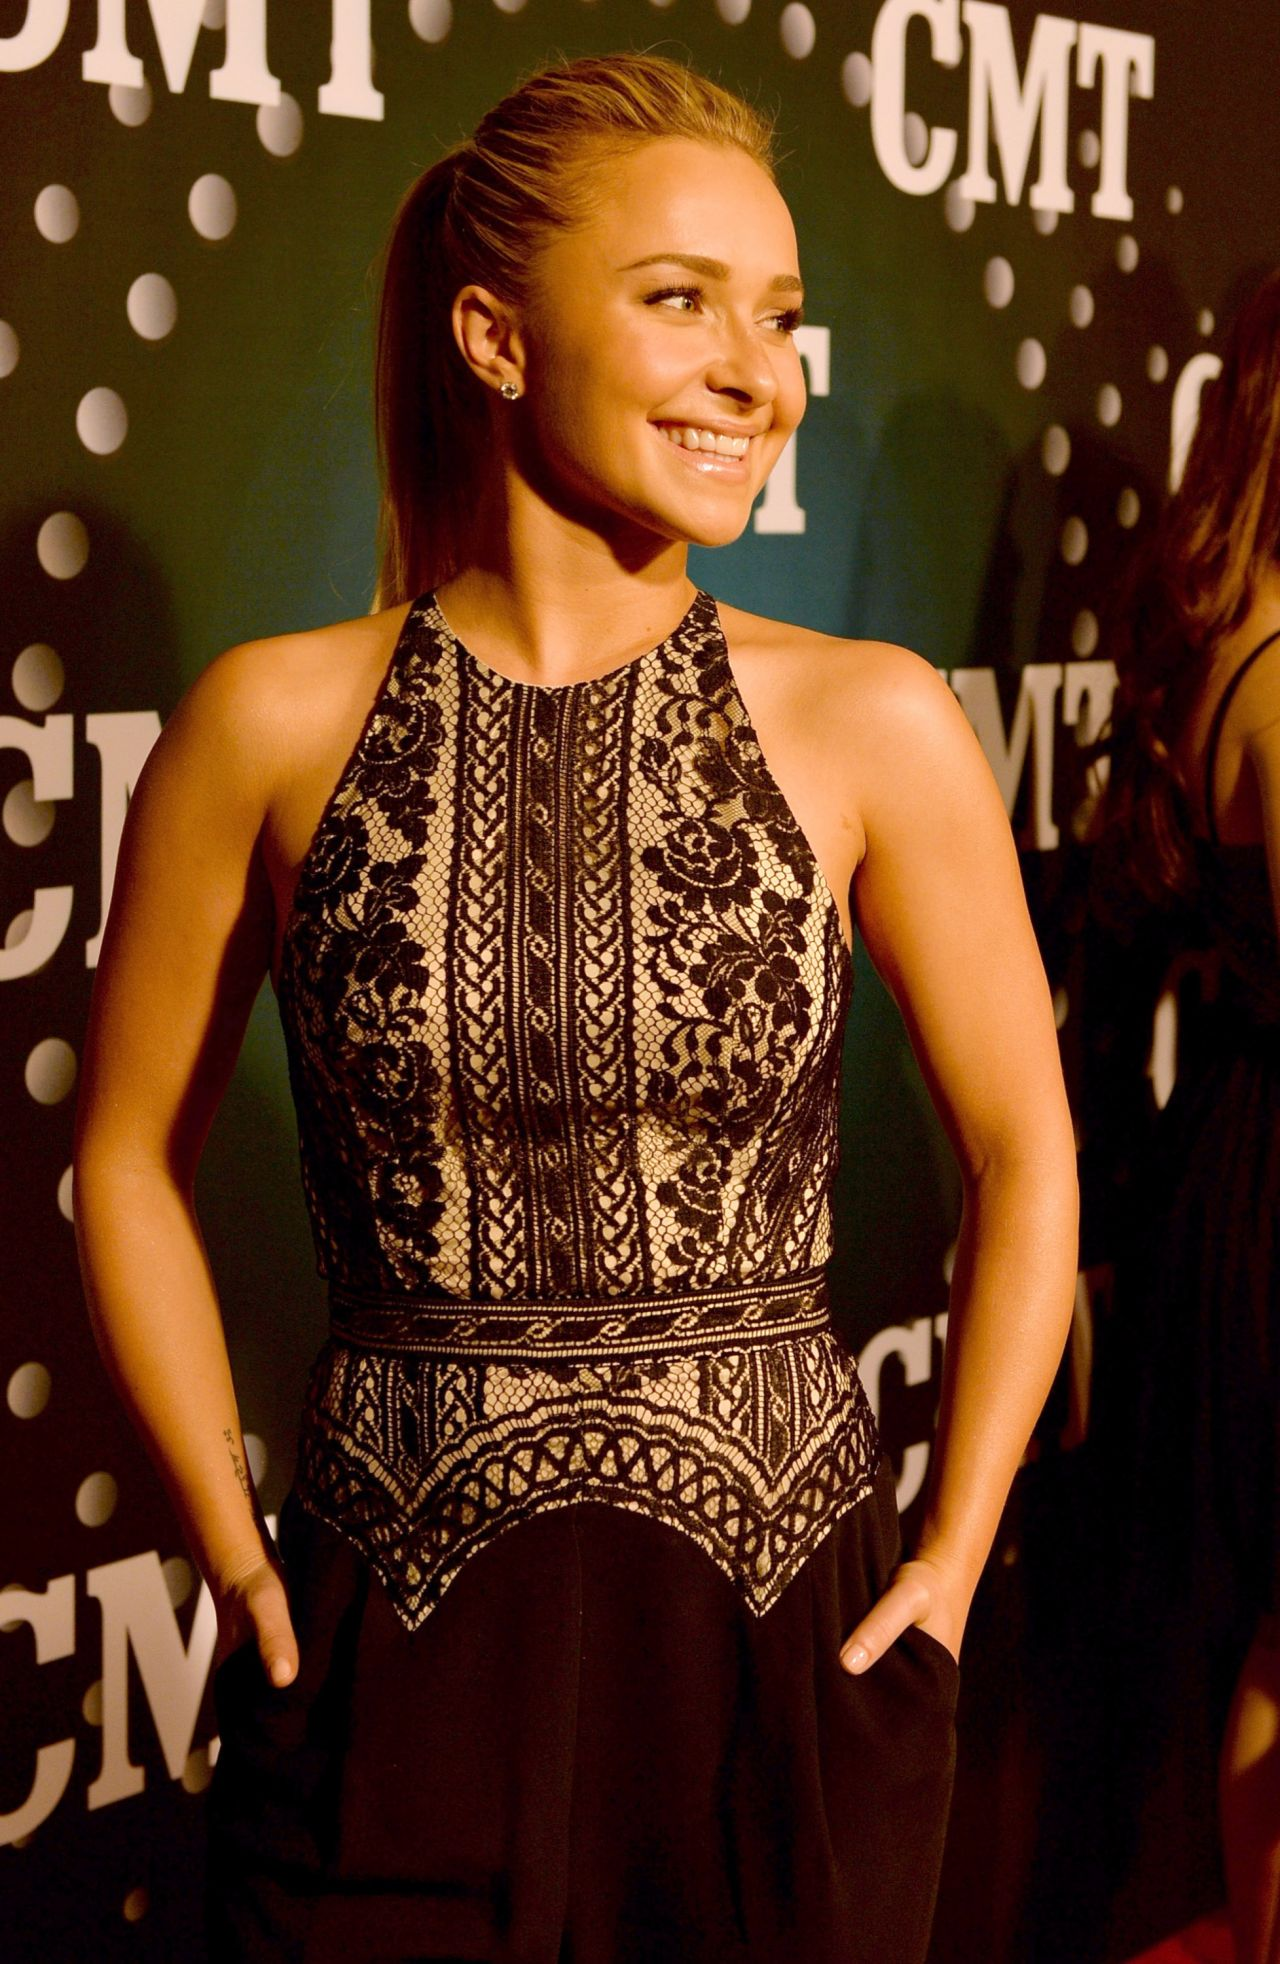 Hayden Panettiere Attends CMT Artists Of The Year in Nashville - December 2013